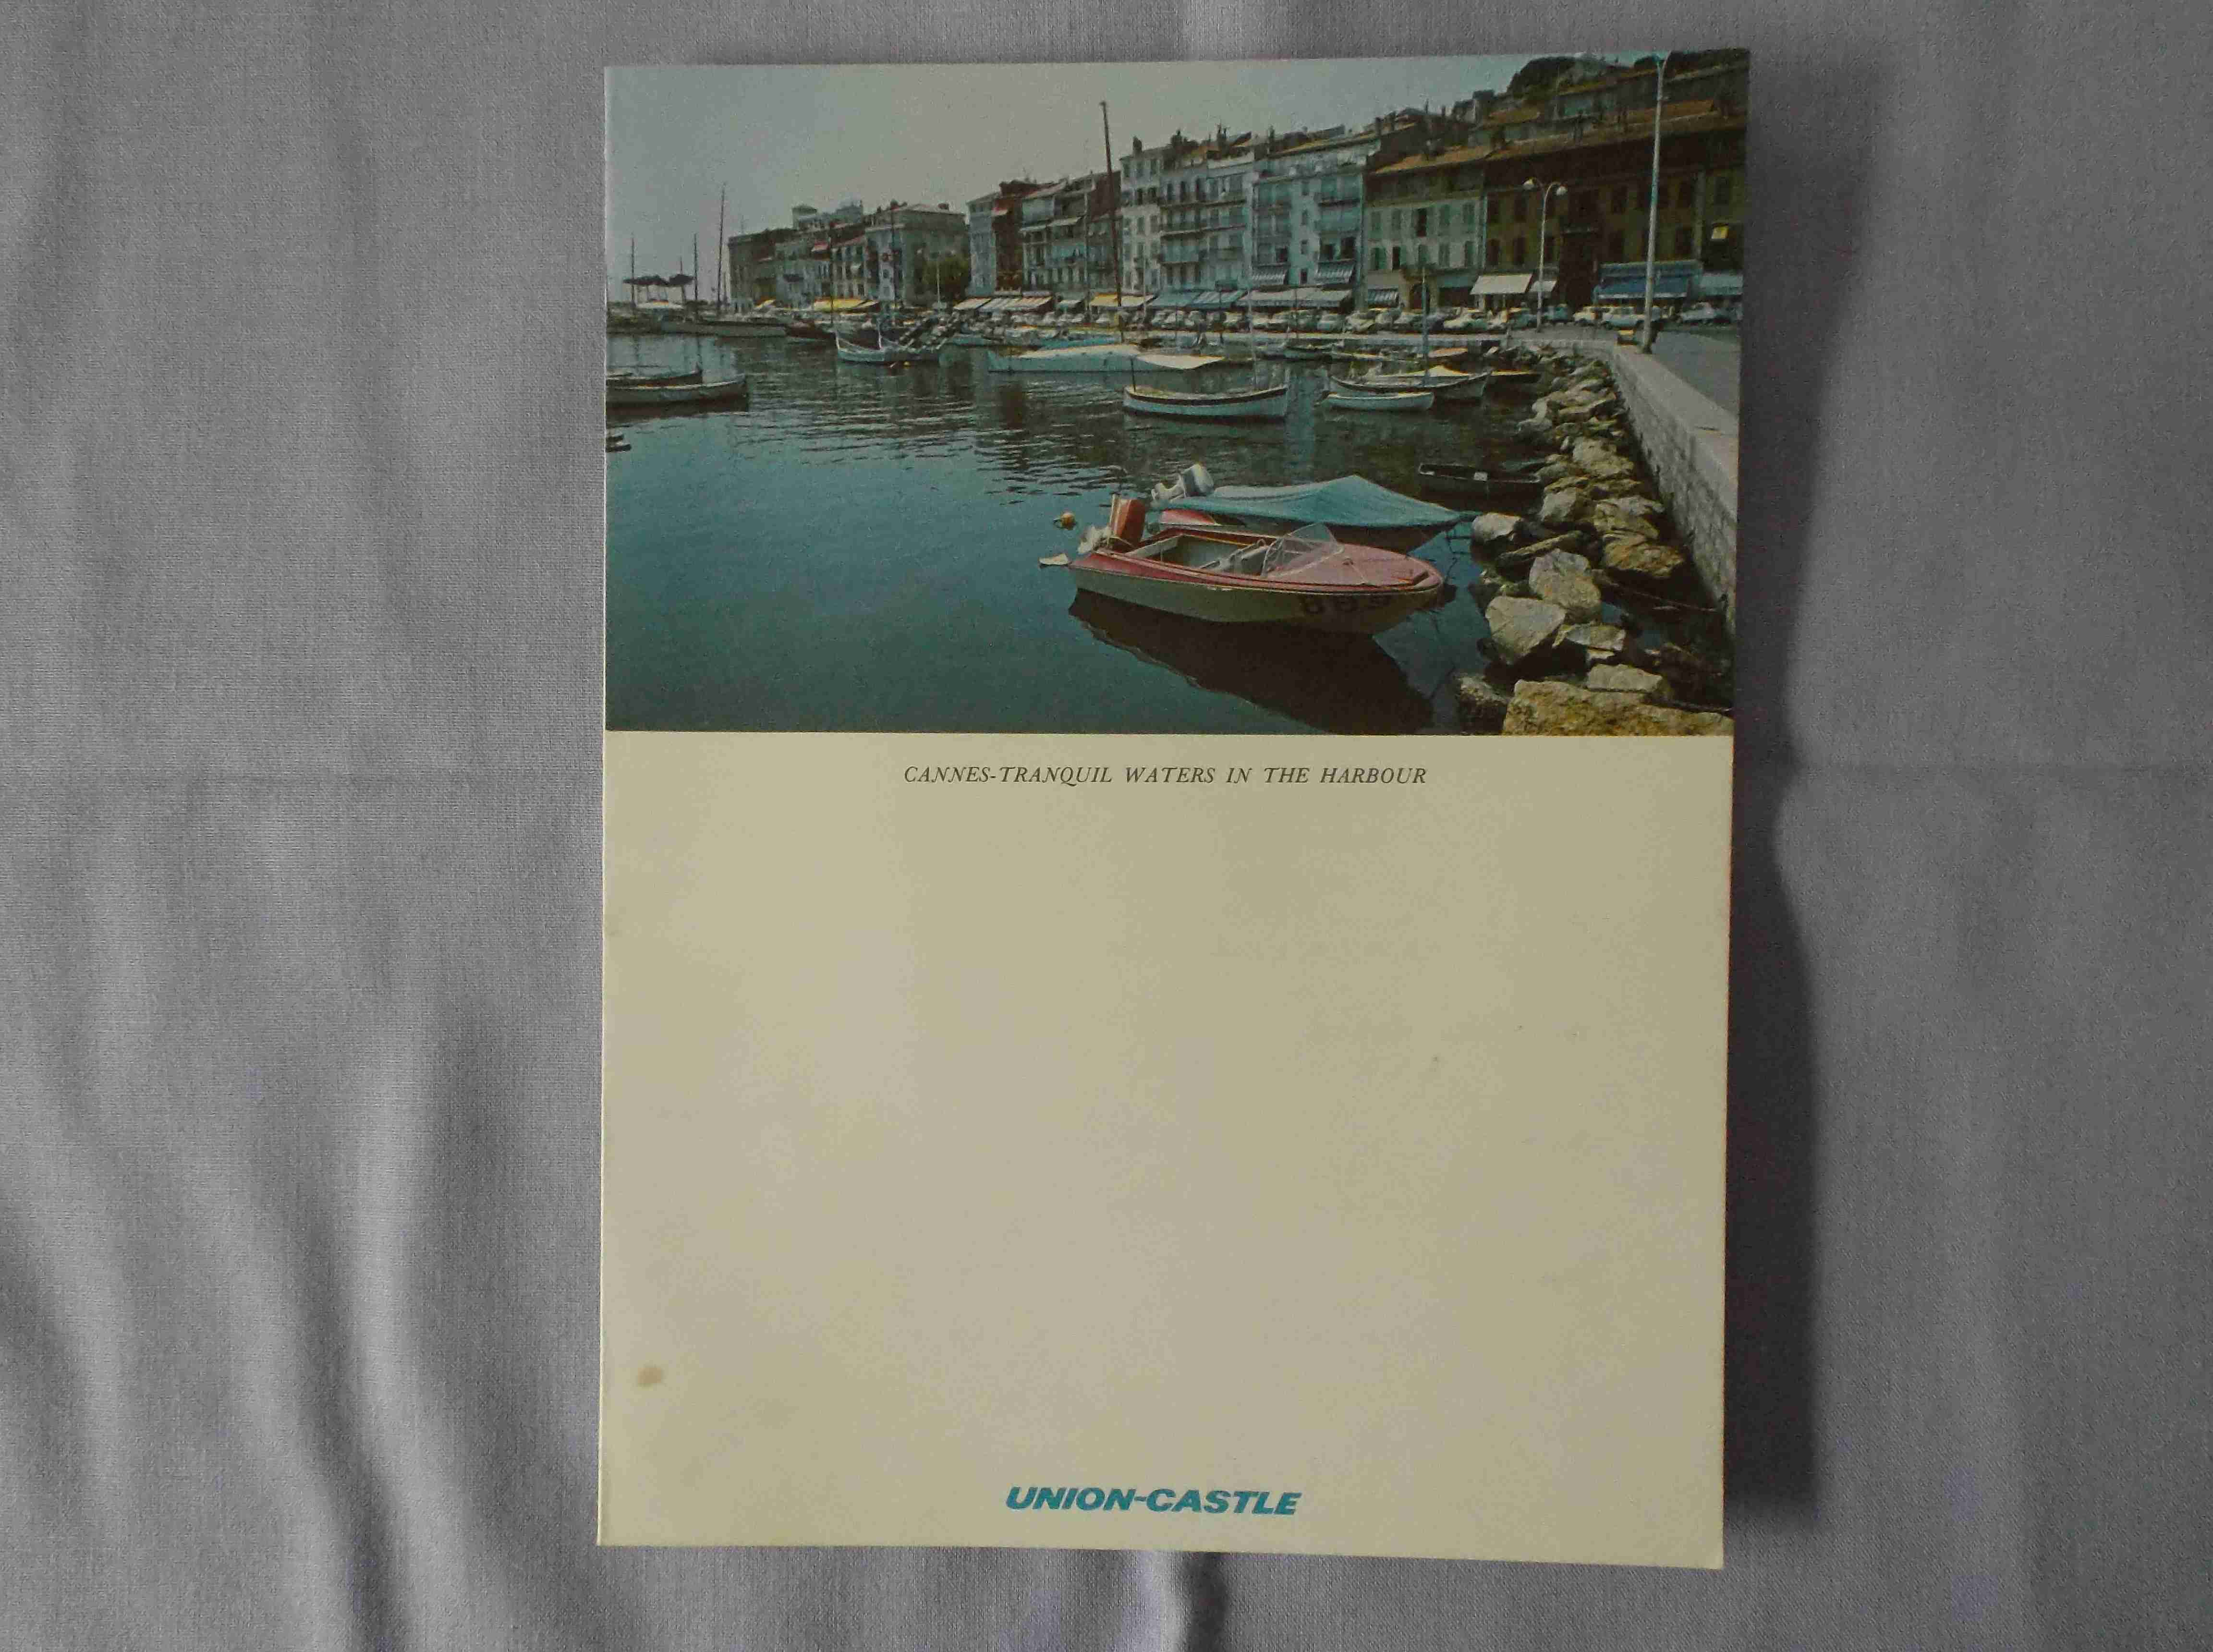 LUNCHEON MENU FROM THE FURNESS WITHY LINE VESSEL THE SS REINA DEL MAR DATED MARCH 1969